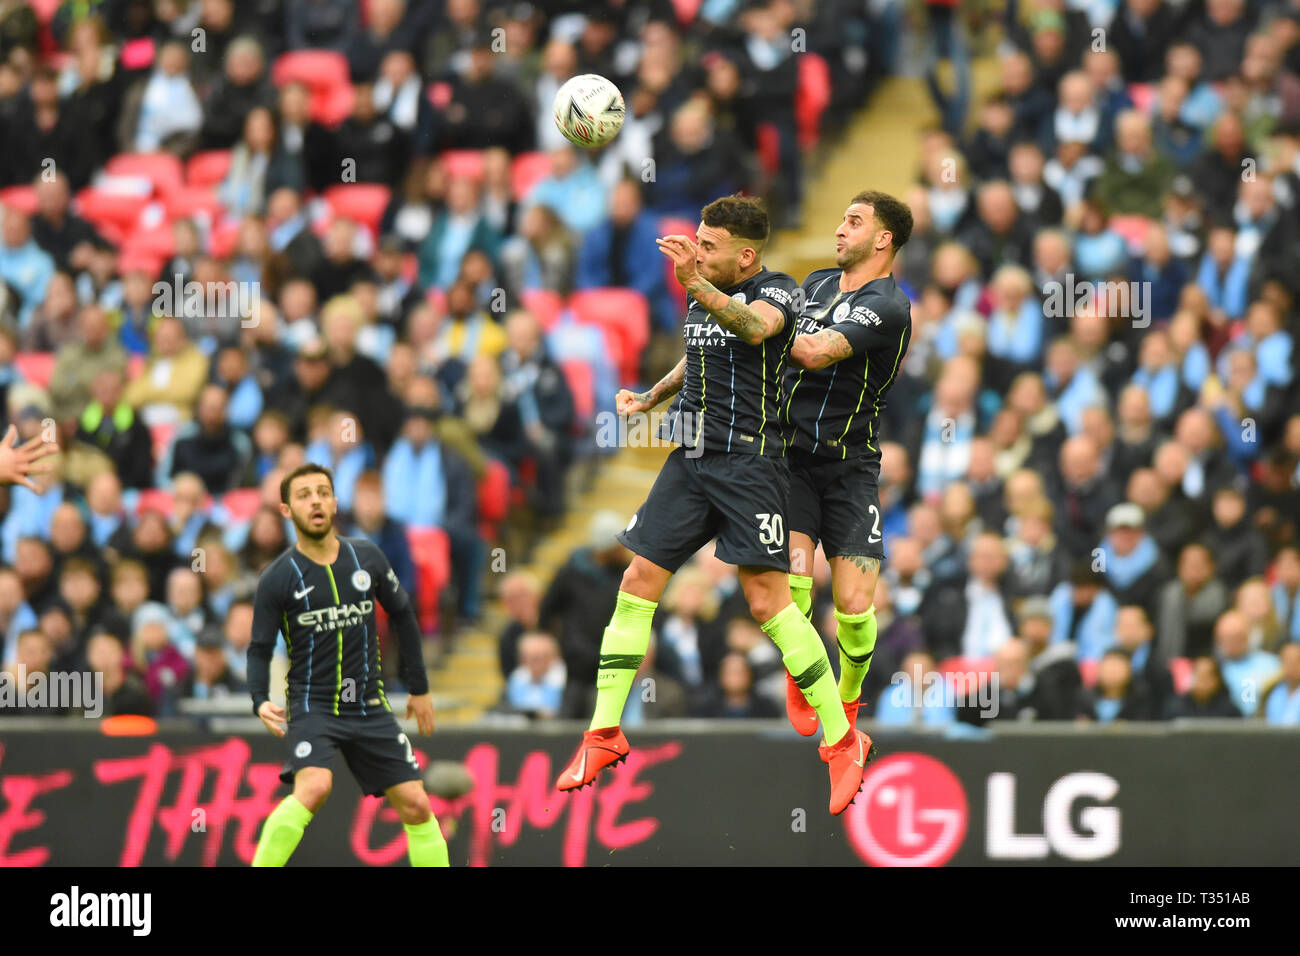 London, UK. 6th Apr, 2019. Manchester City defender Nicolas Otamendi and Kyle Walker head the same ball during the FA Cup Semi Final between Brighton and Hove Albion and Manchester City at Wembley Stadium, London on Saturday 6th April 2019. (Credit: Jon Bromley | MI News) Editorial use only, license required for commercial use. No use in betting, games or a single club/league/player publications. Photograph may only be used for newspaper and/or magazine editorial purposes. Credit: MI News & Sport /Alamy Live News Stock Photo